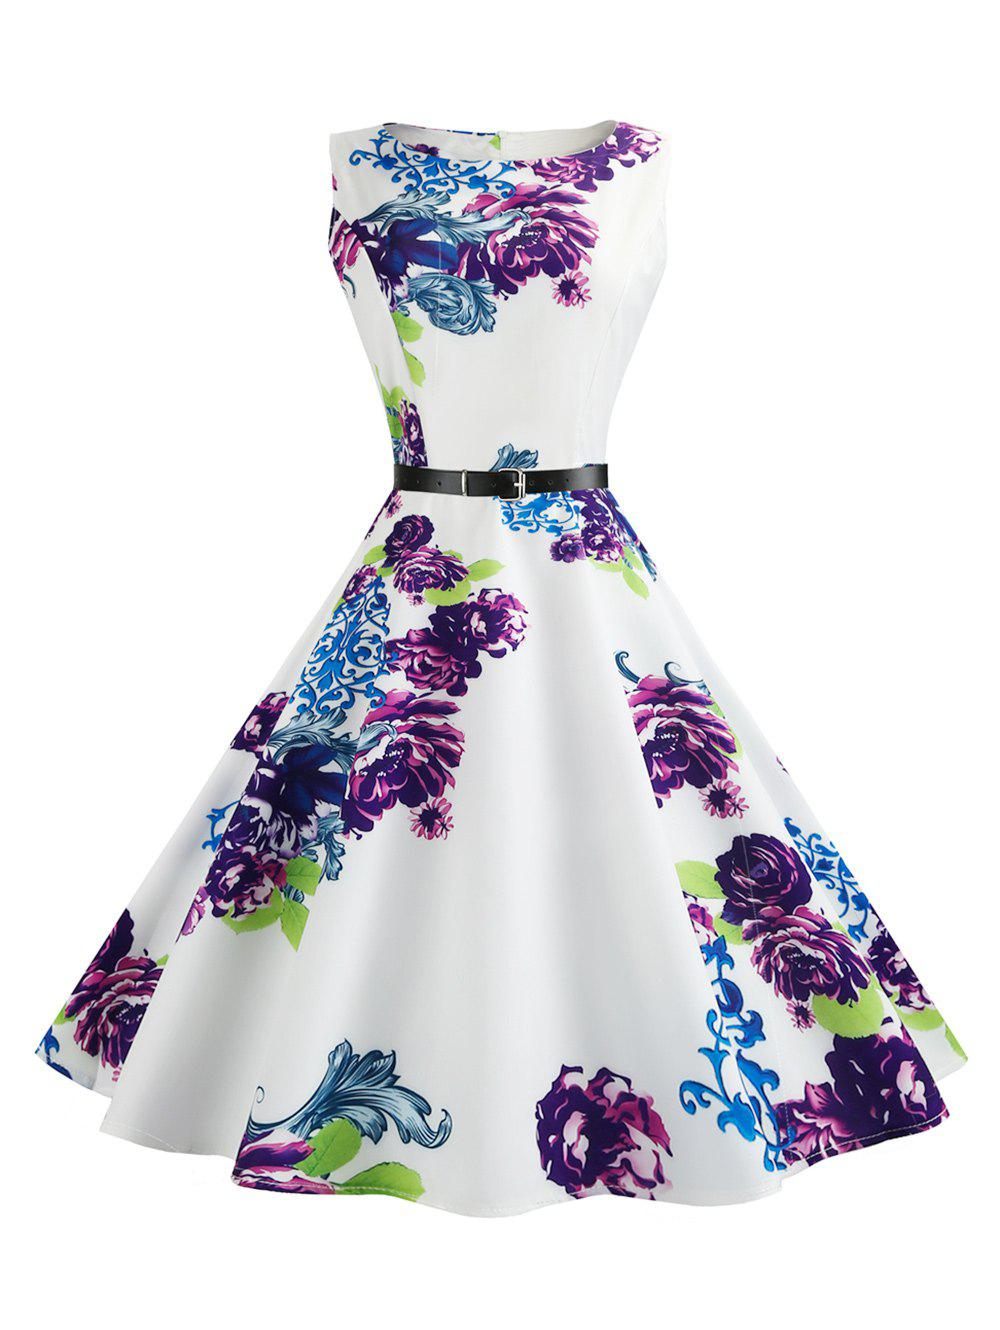 Store Retro Sleeveless Printed Fit and Flare Dress